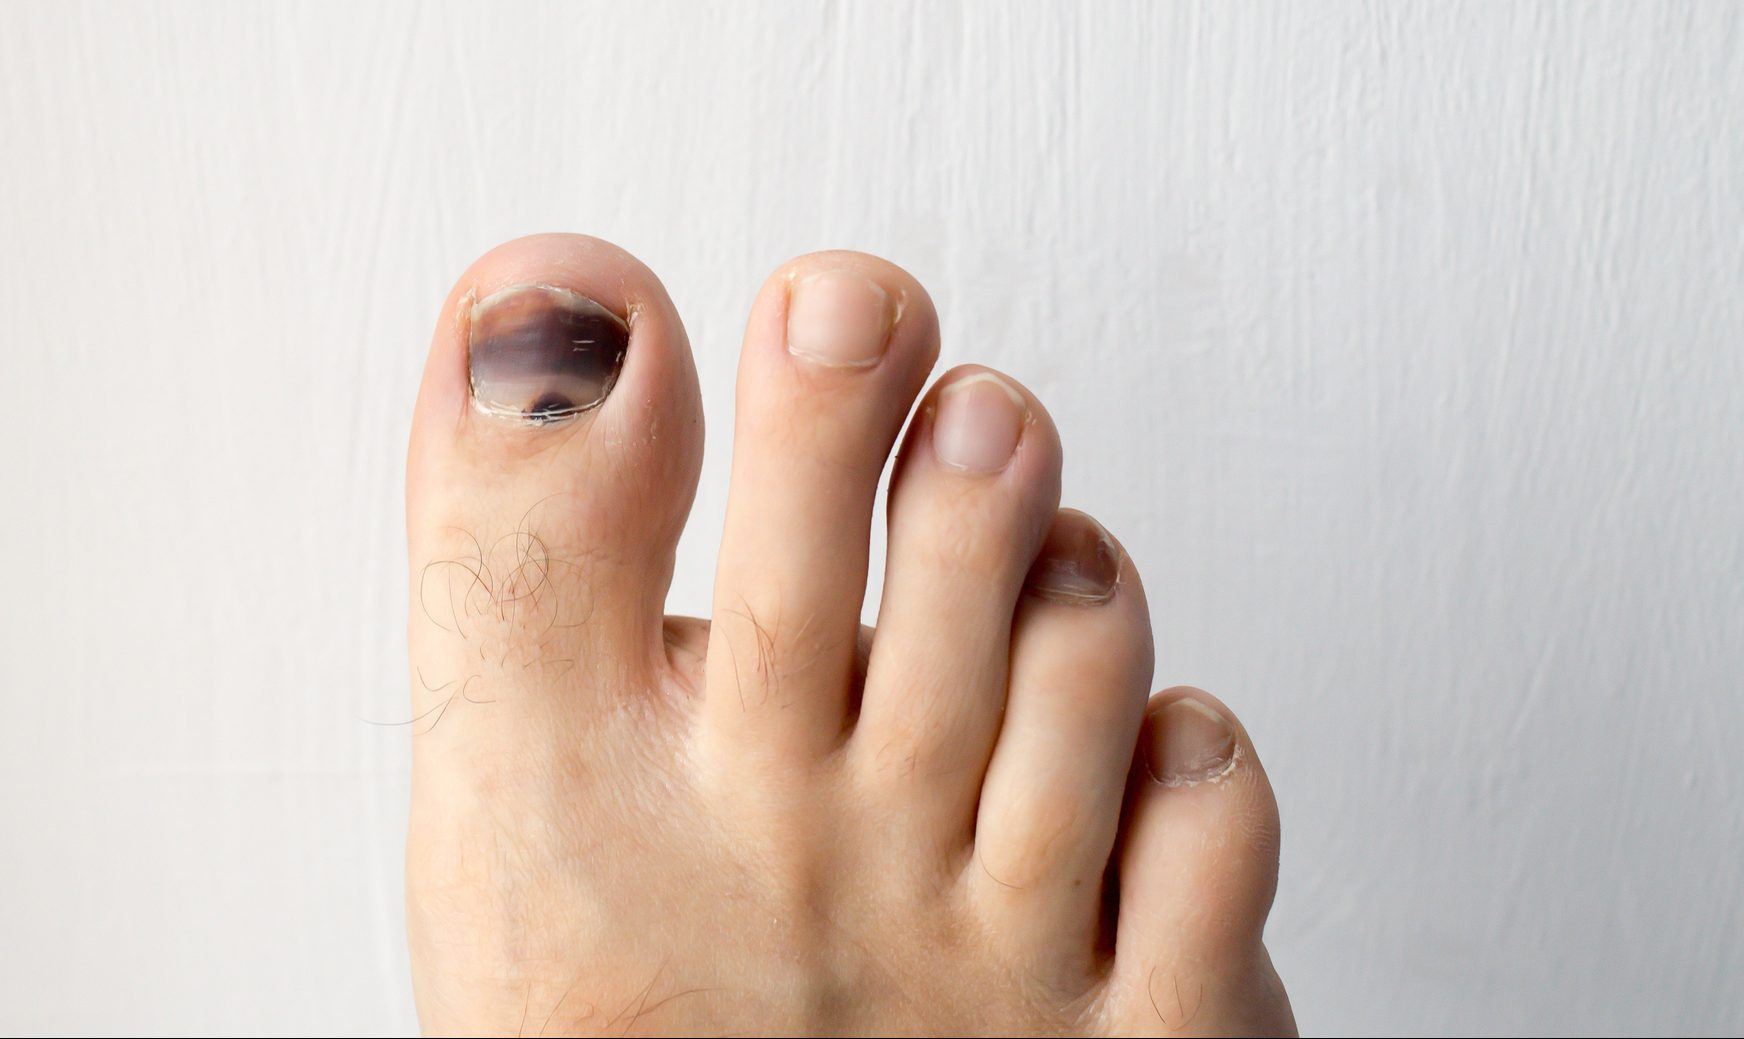 black and blue toenail with runner's toe